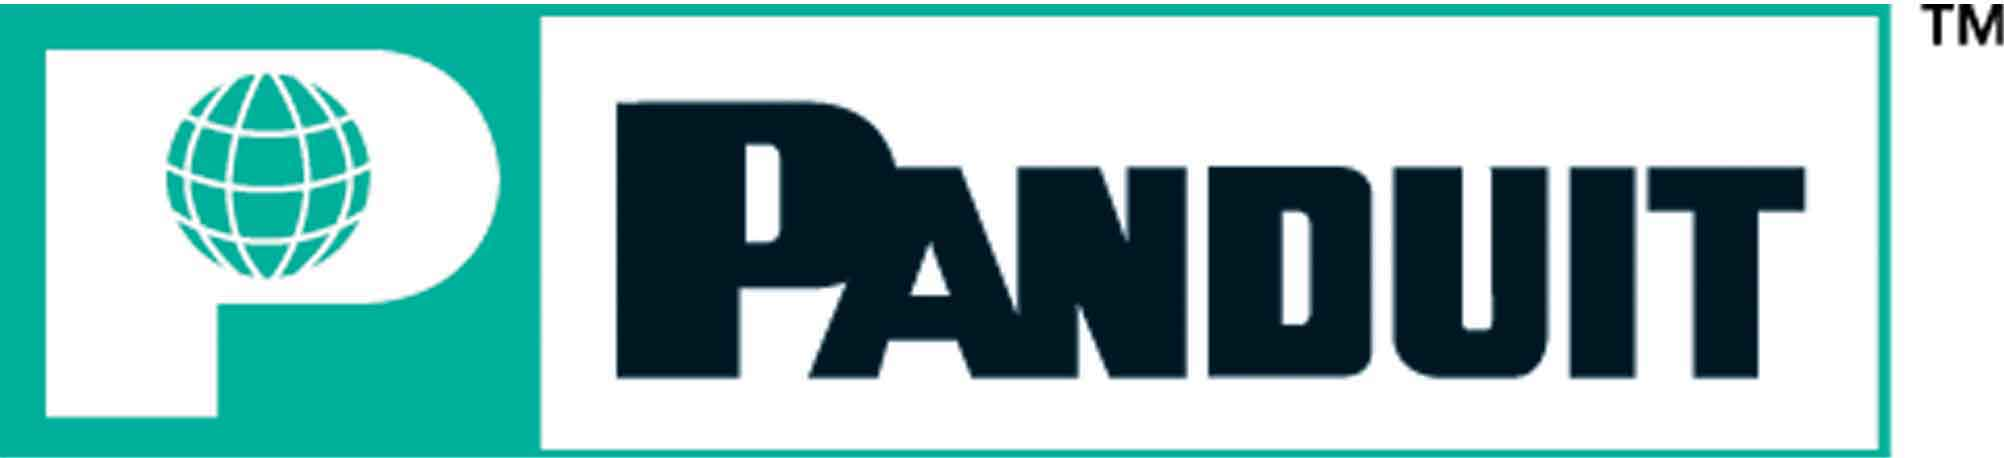 panduit_logo